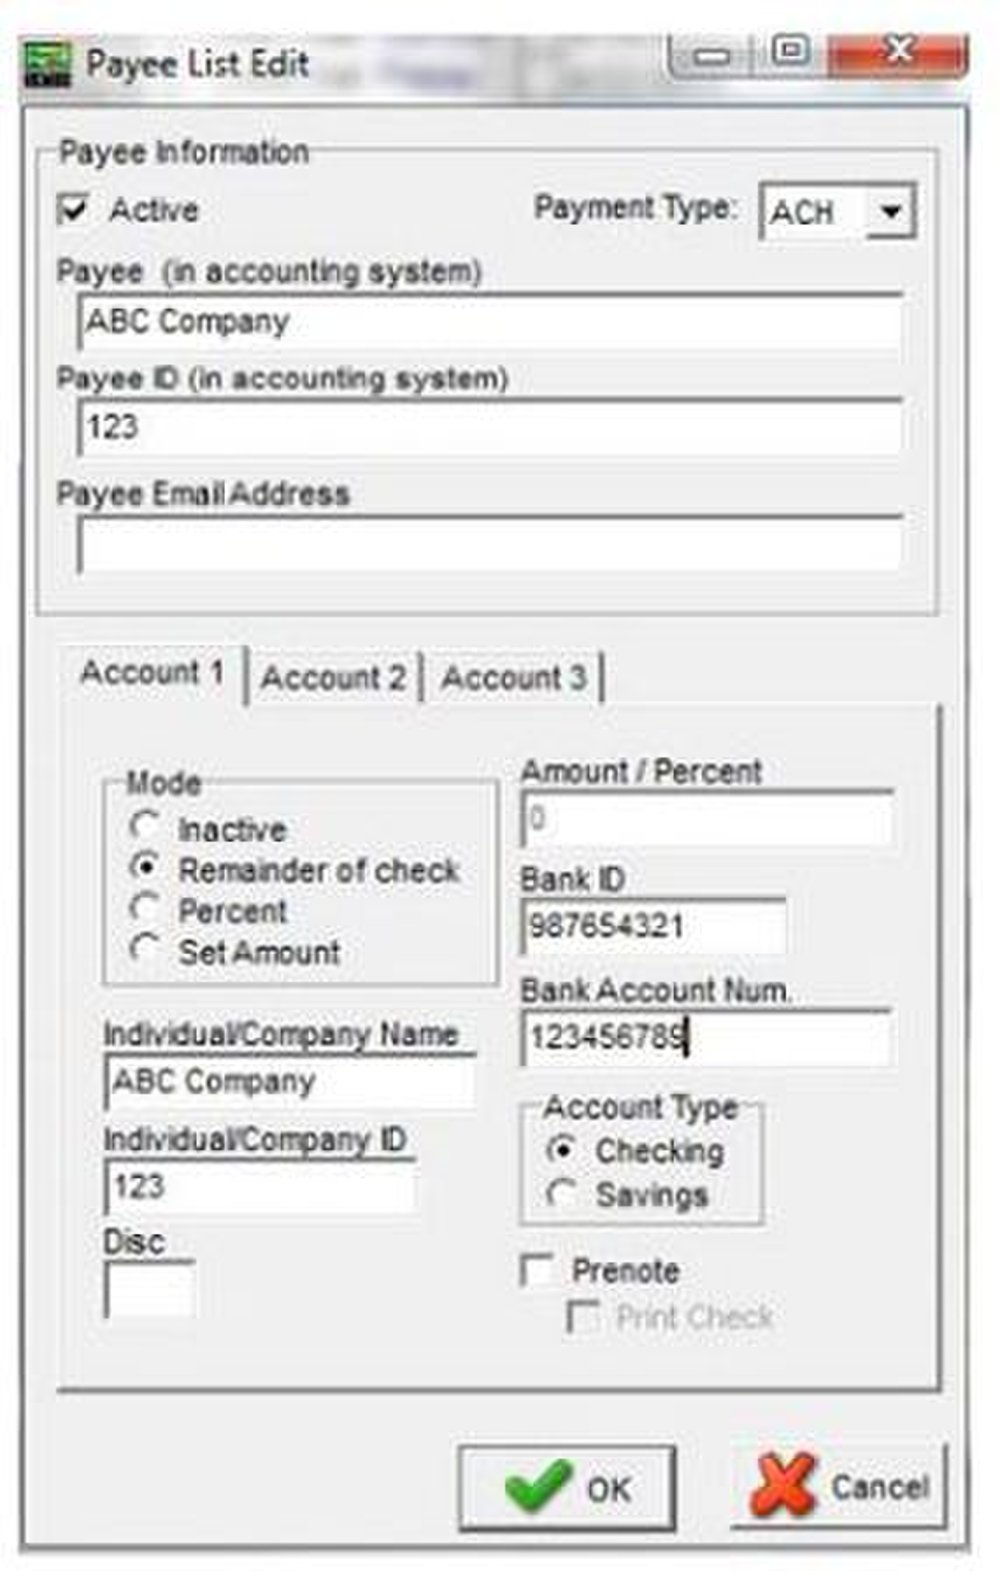 You can set up this check writing software to make ACH payments.